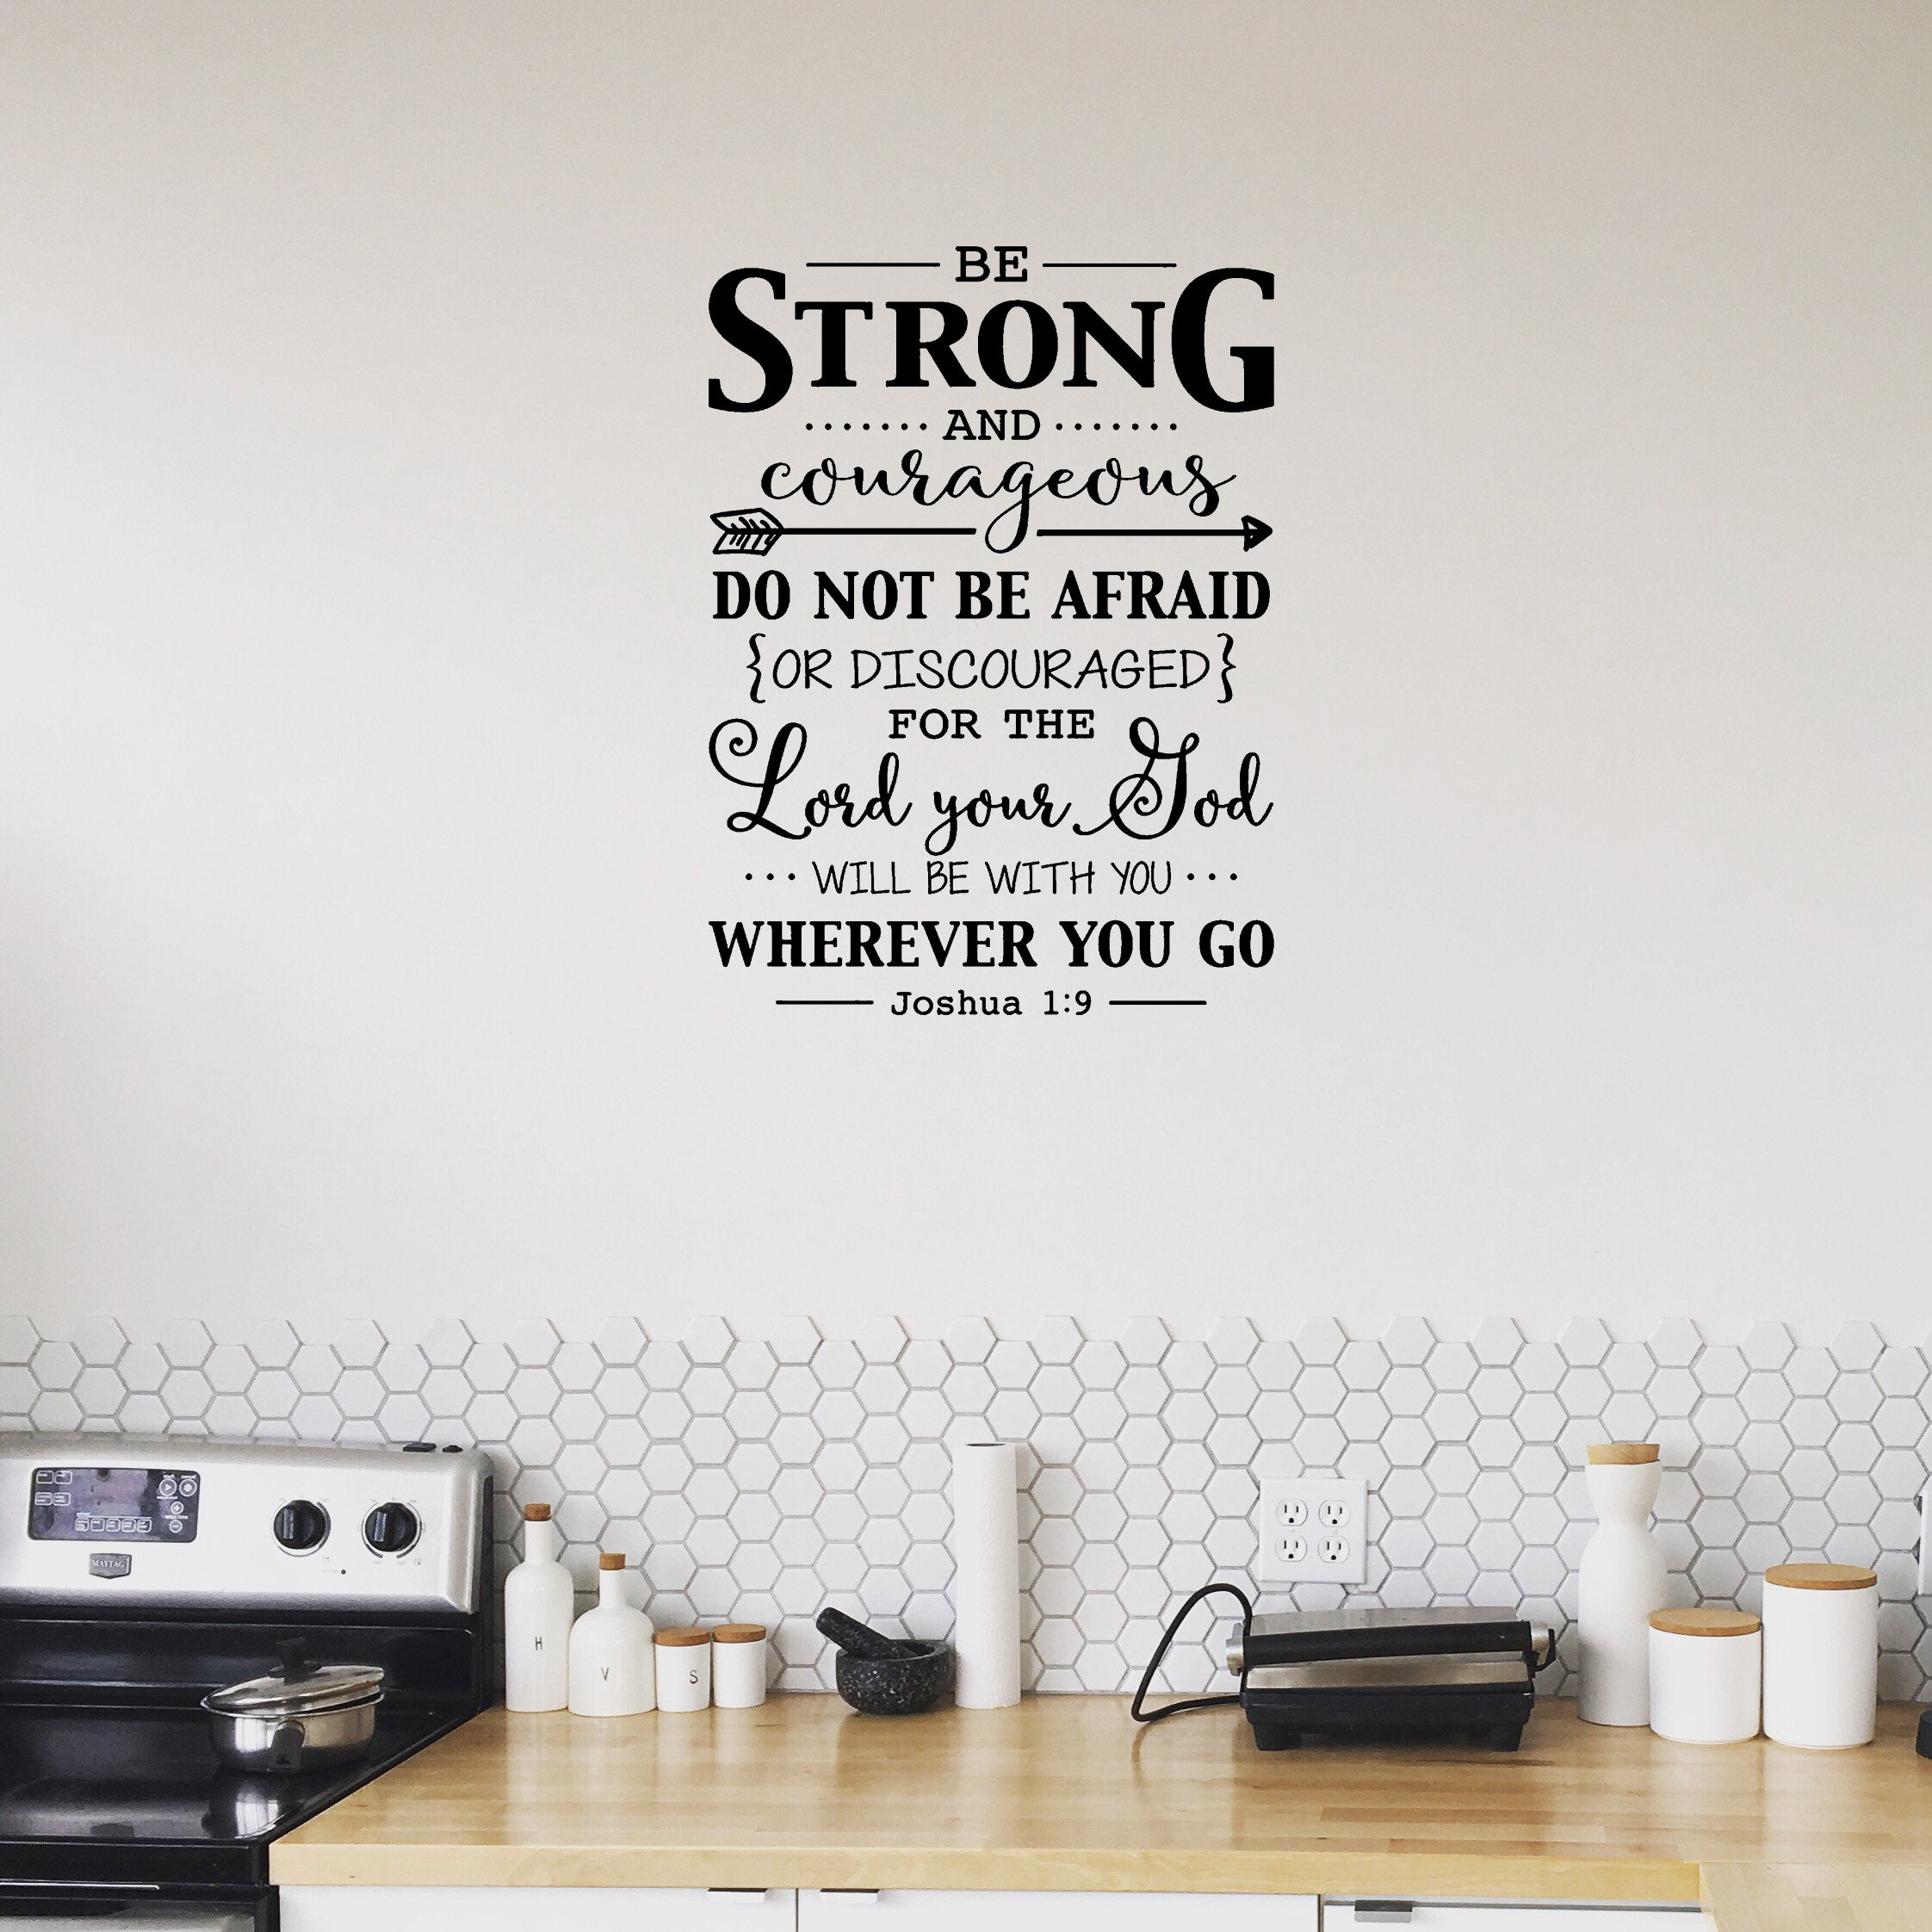 Be strong and courageous wall decal sticker